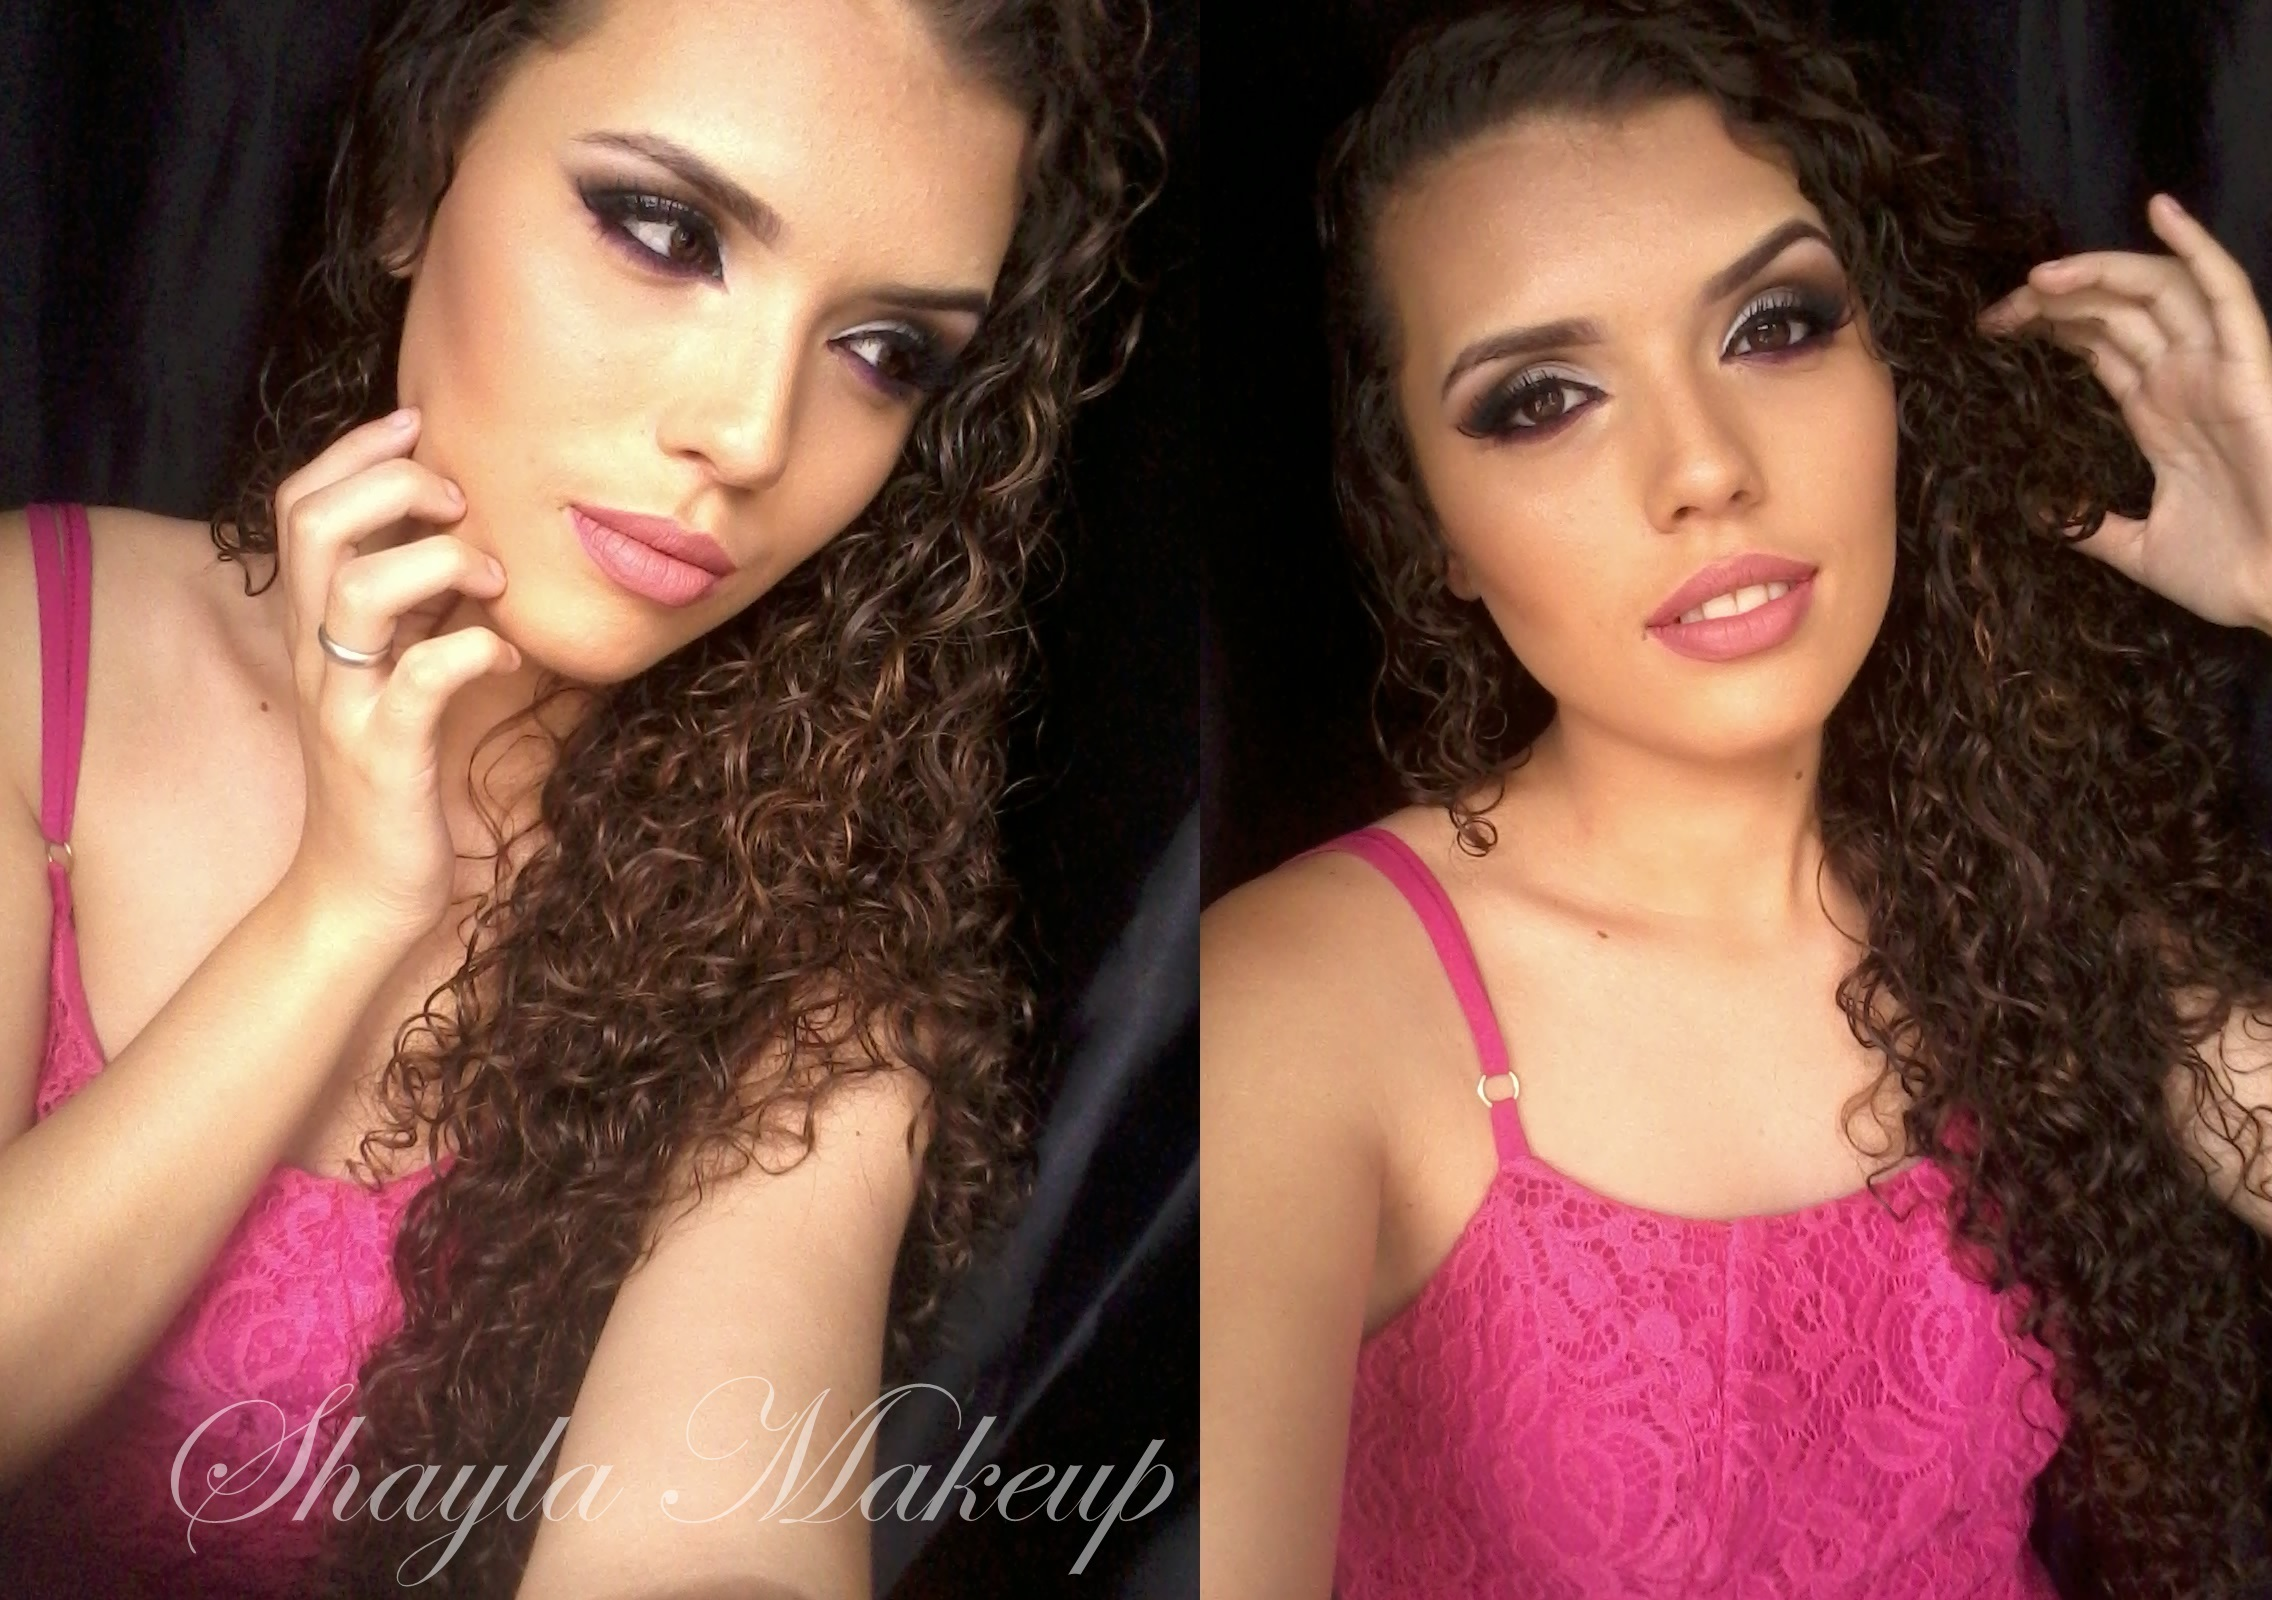 #Makeluxo